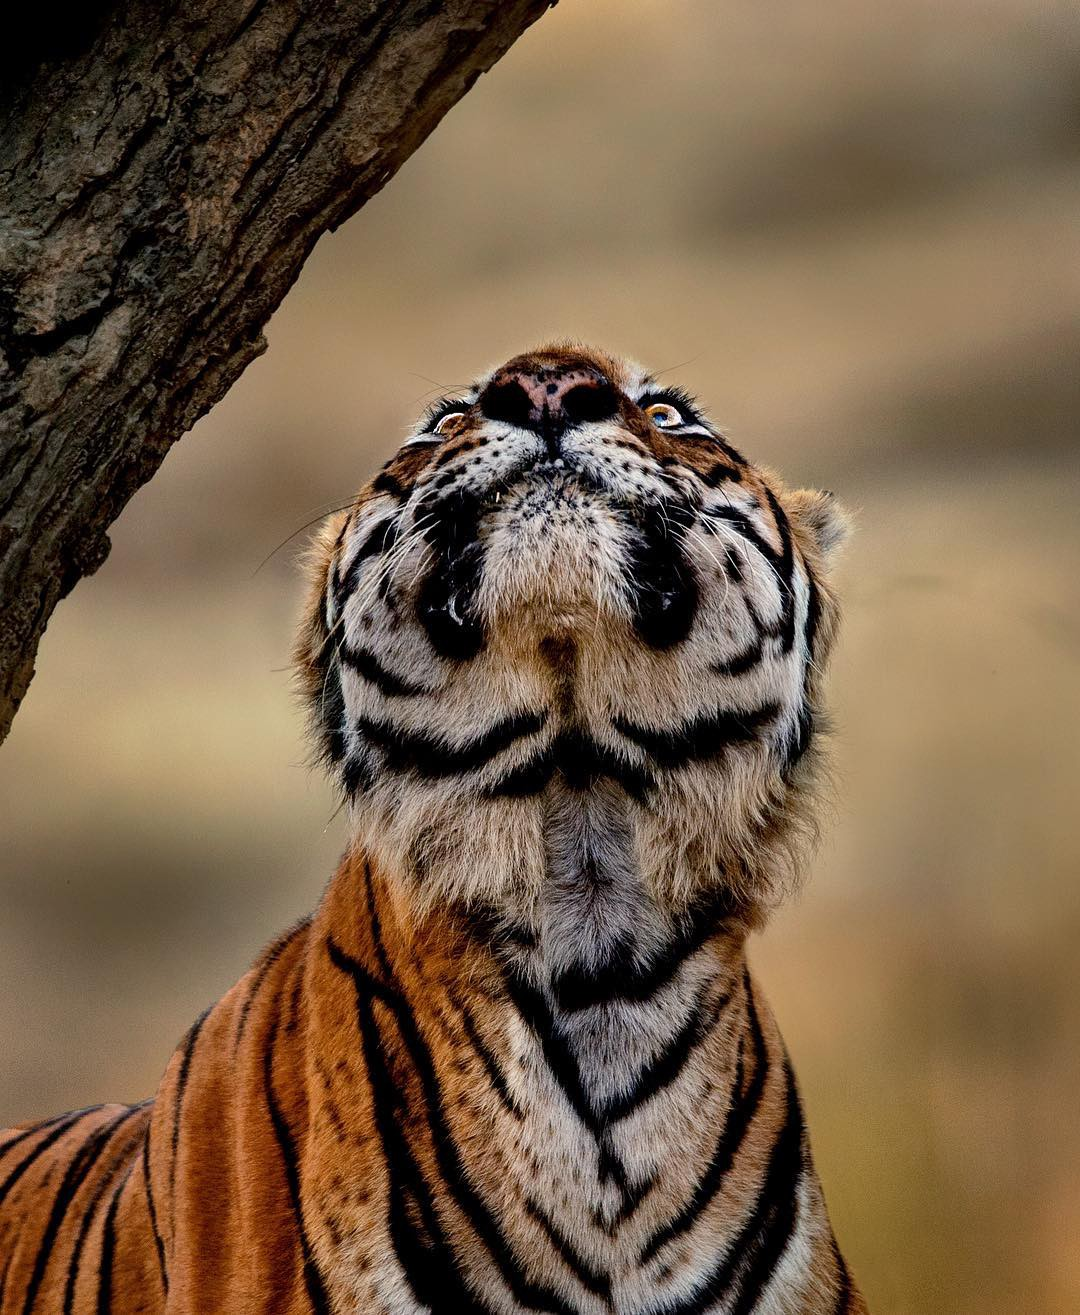 A tiger looking up.